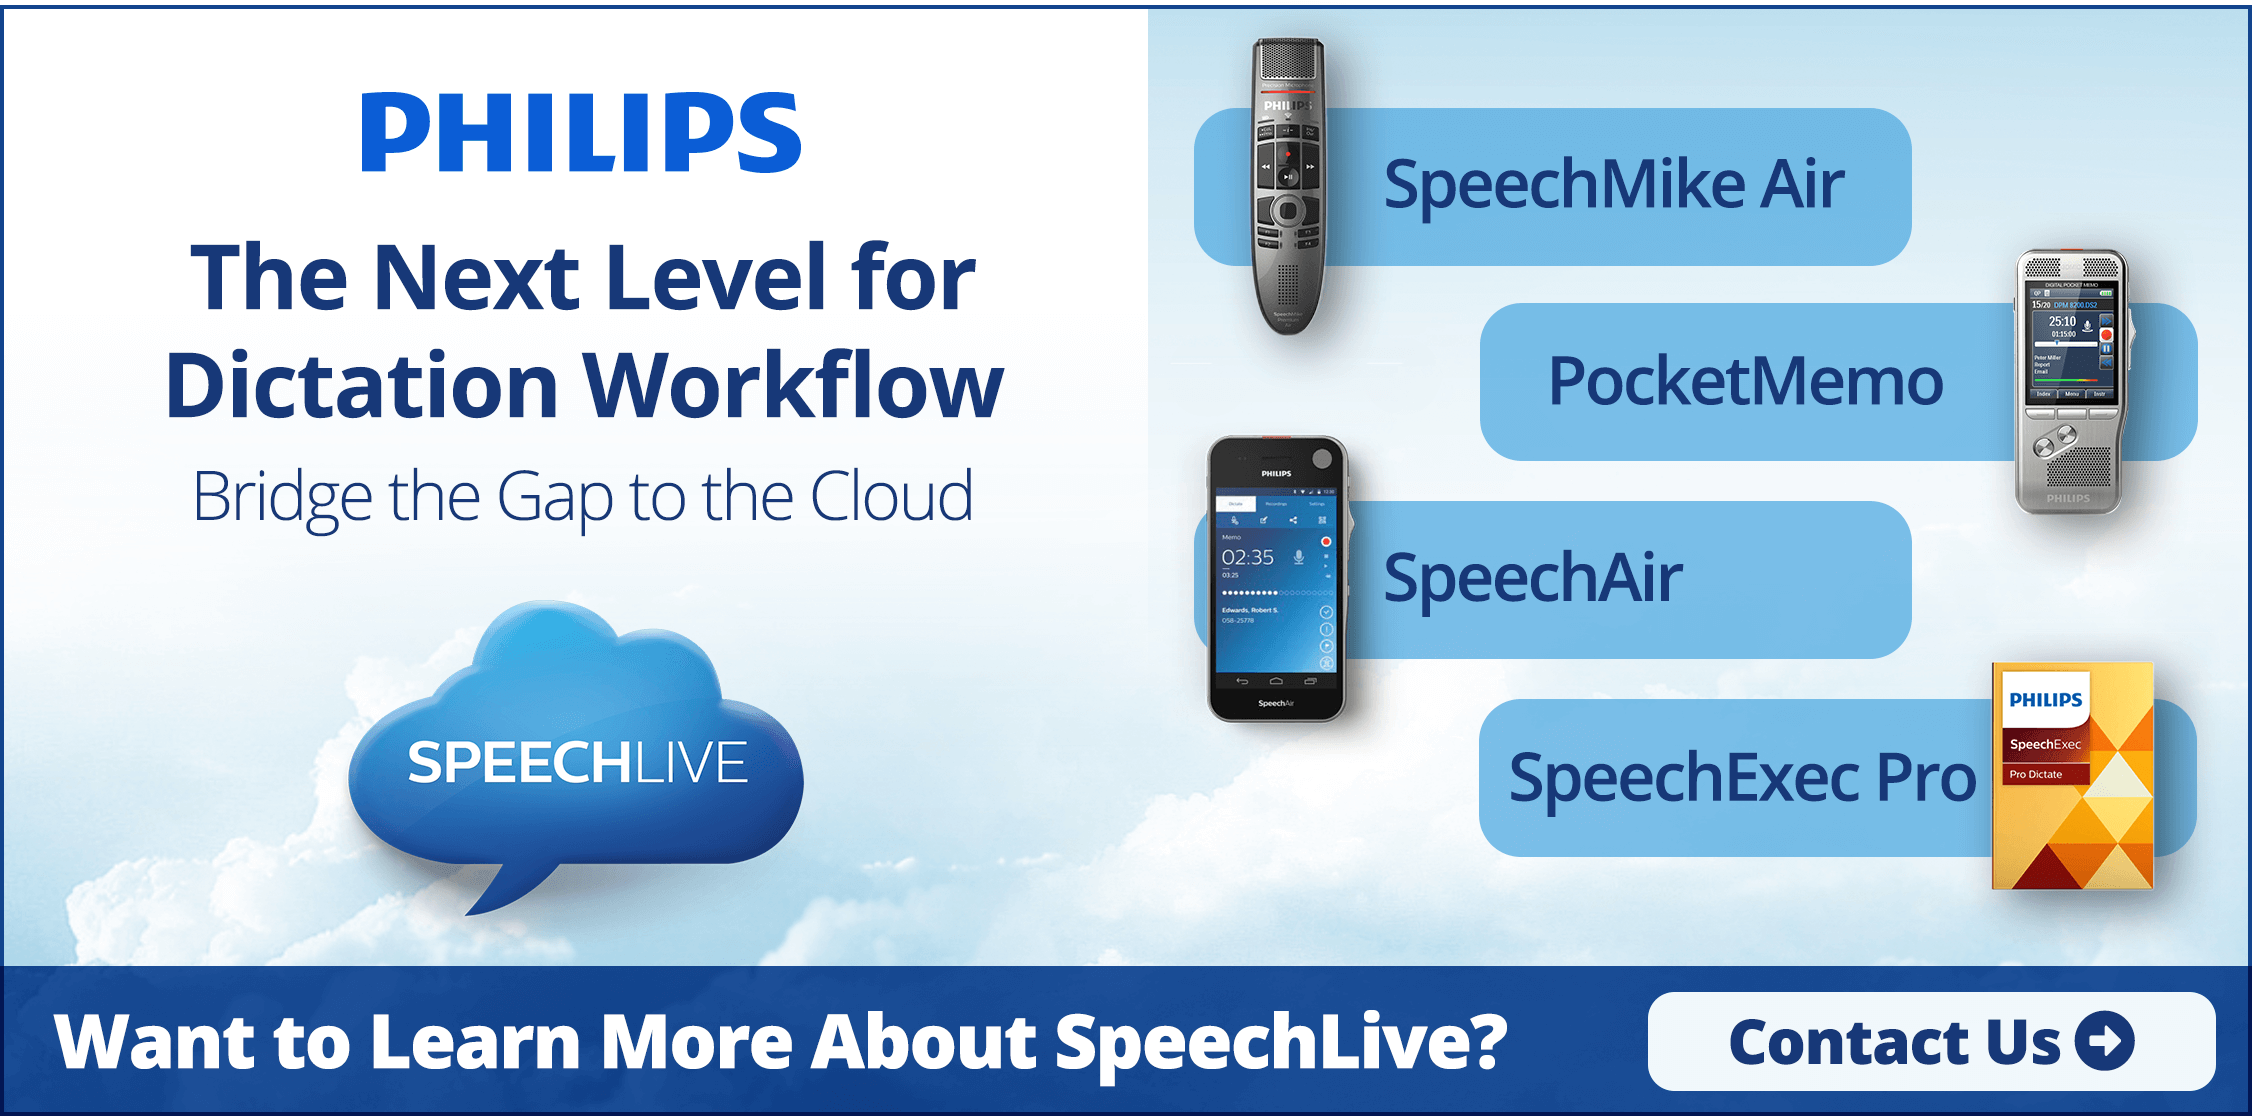 Philips SpeechLive - The Next Level for Dictation Workflow